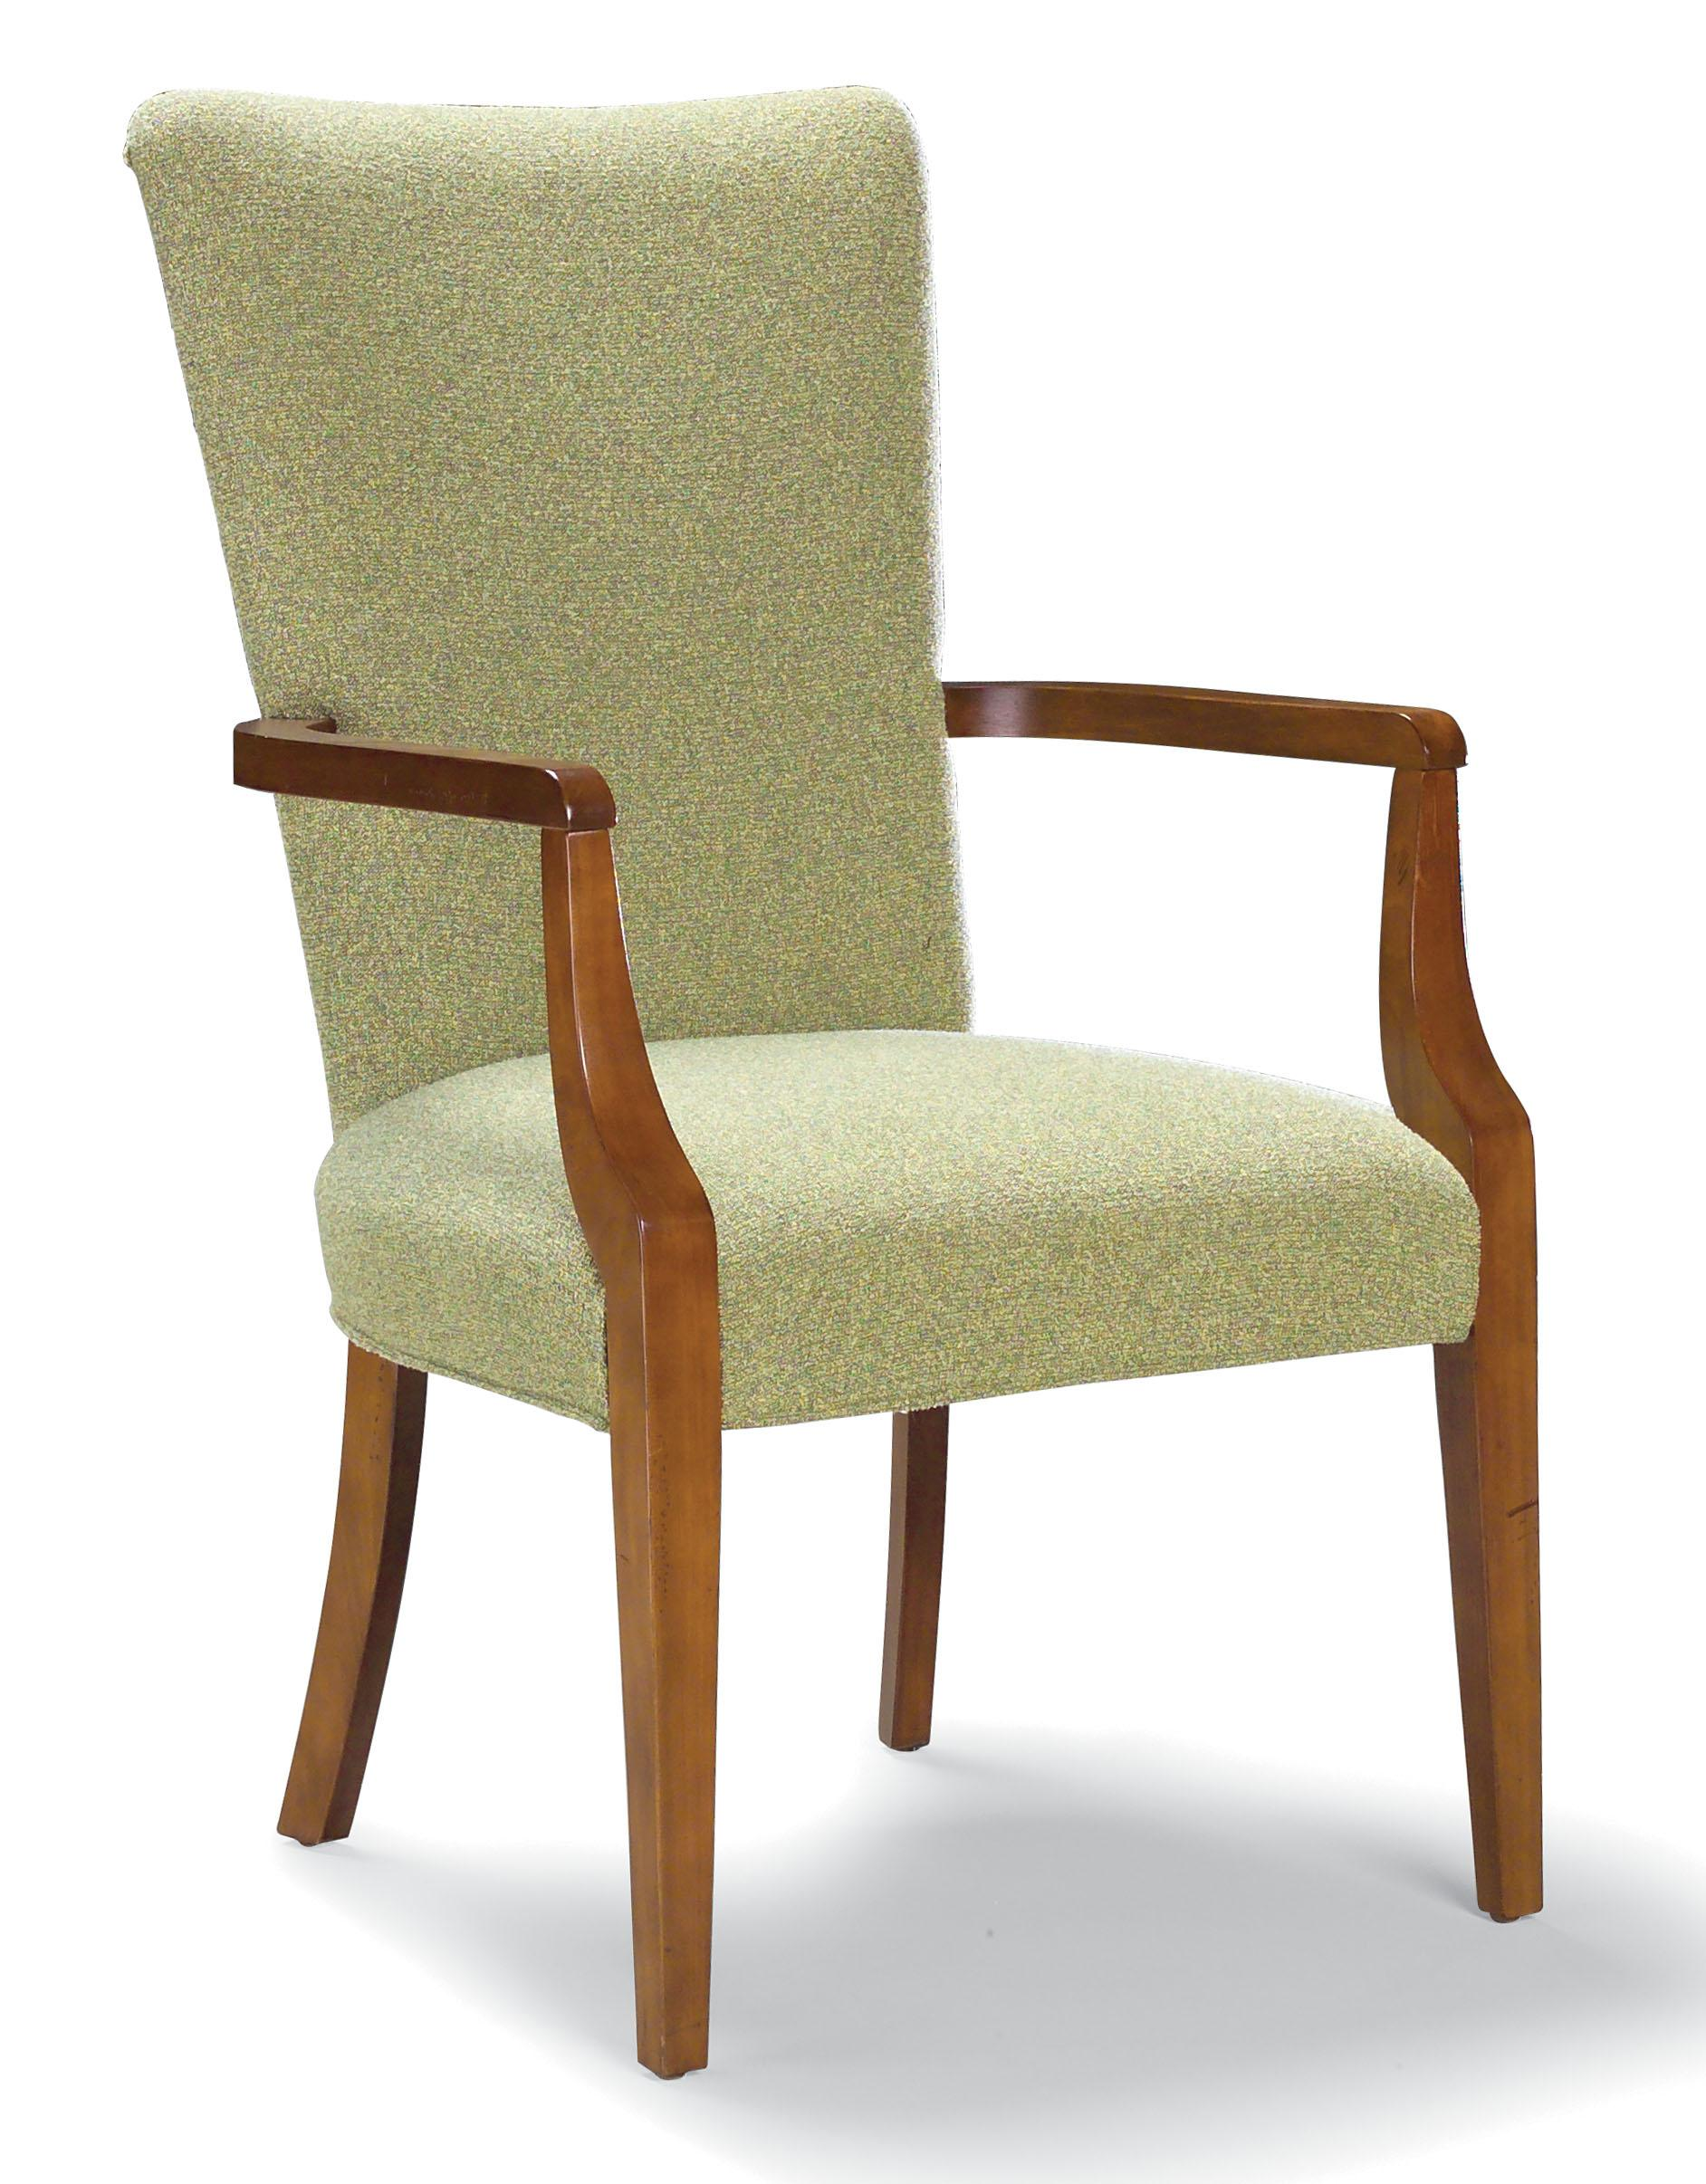 Fairfield Chairs Exposed Wood Arm Chair - Item Number: 5408-04